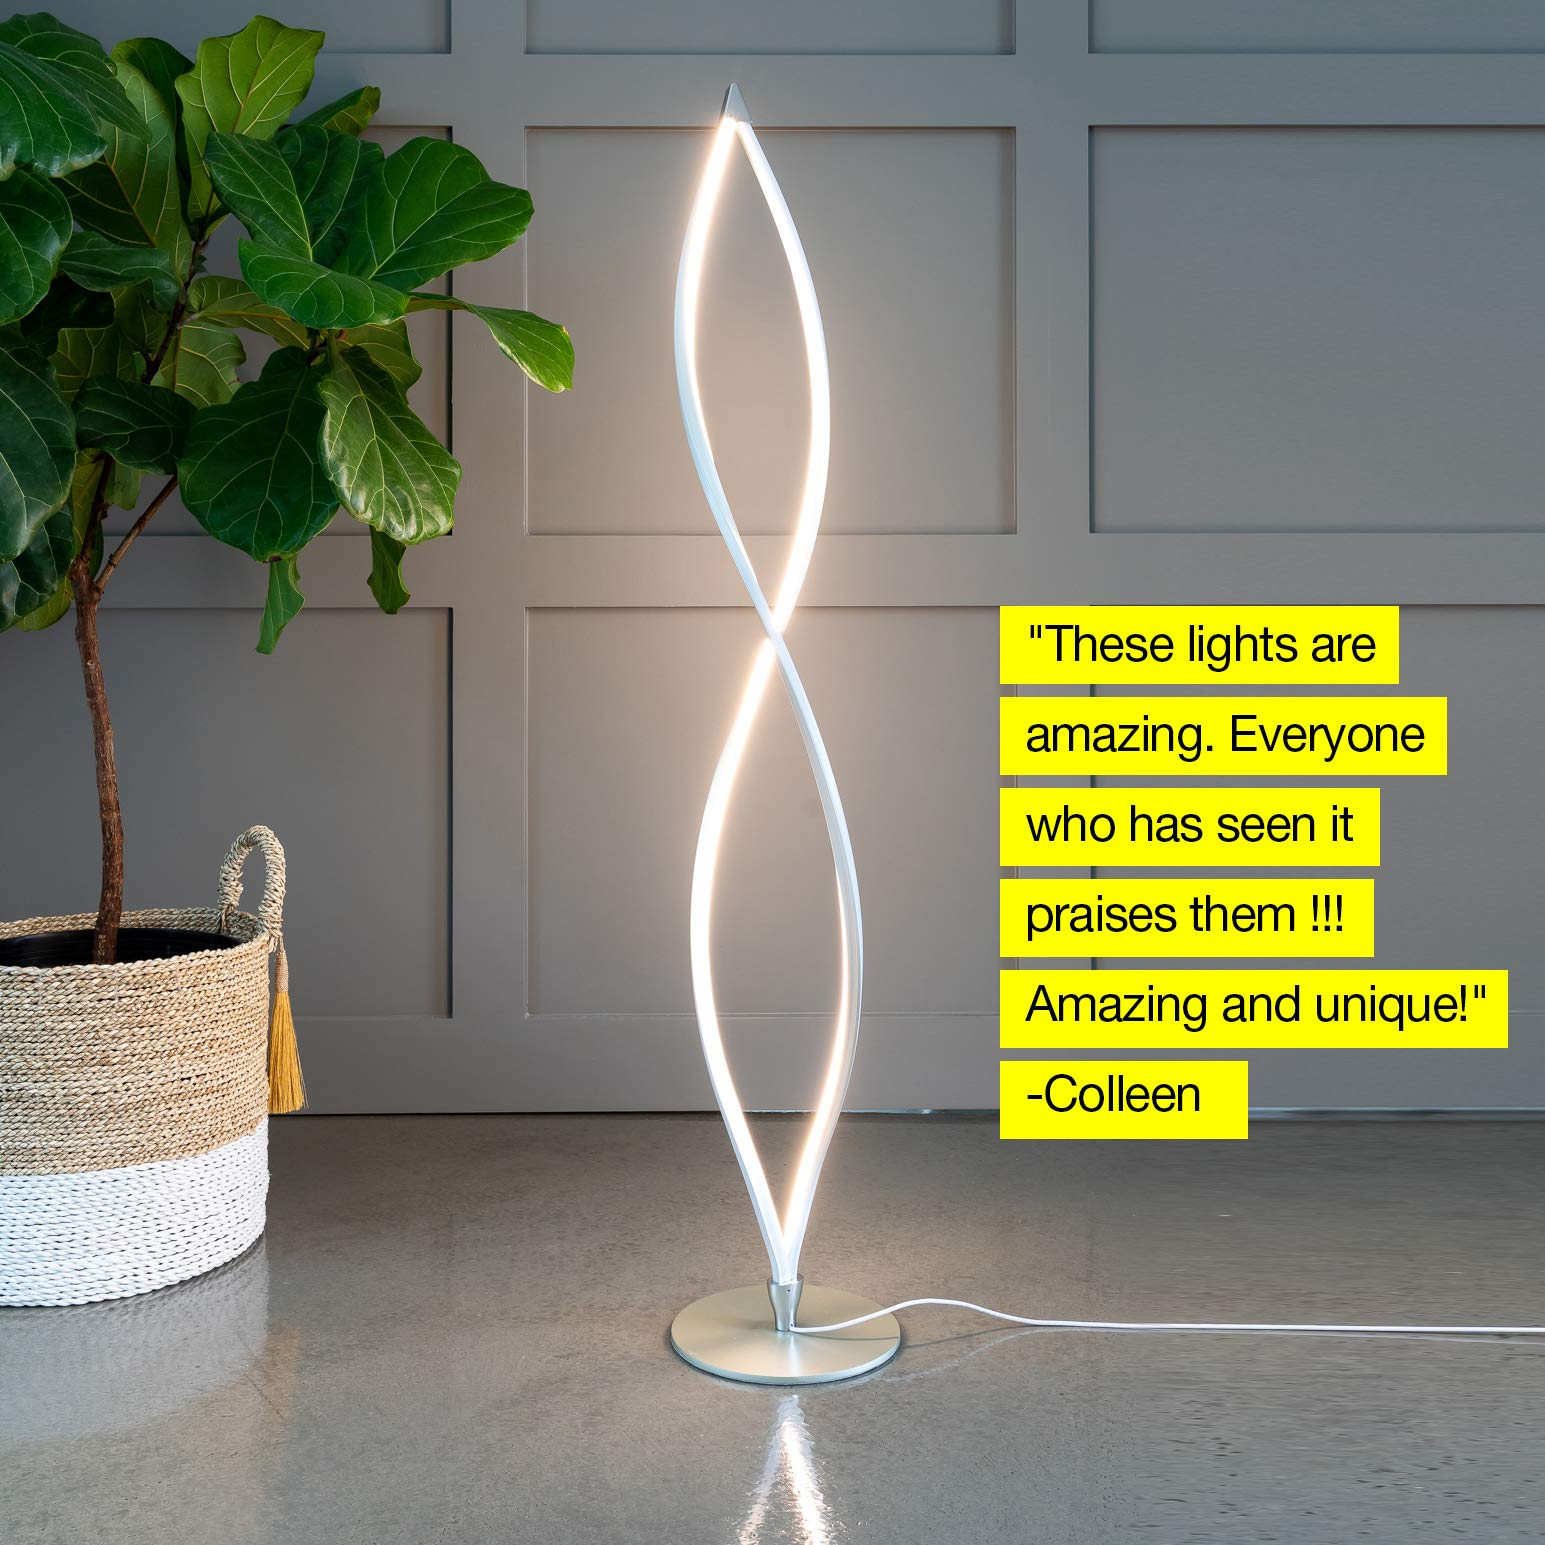 Brightech Twist - Modern LED Living Room Floor Lamp - Bright Contemporary Standing Light - Built in Dimmer Switch with 3 Brightness Settings - Cool, Futuristic Lighting - Silver by Brightech (Image #4)